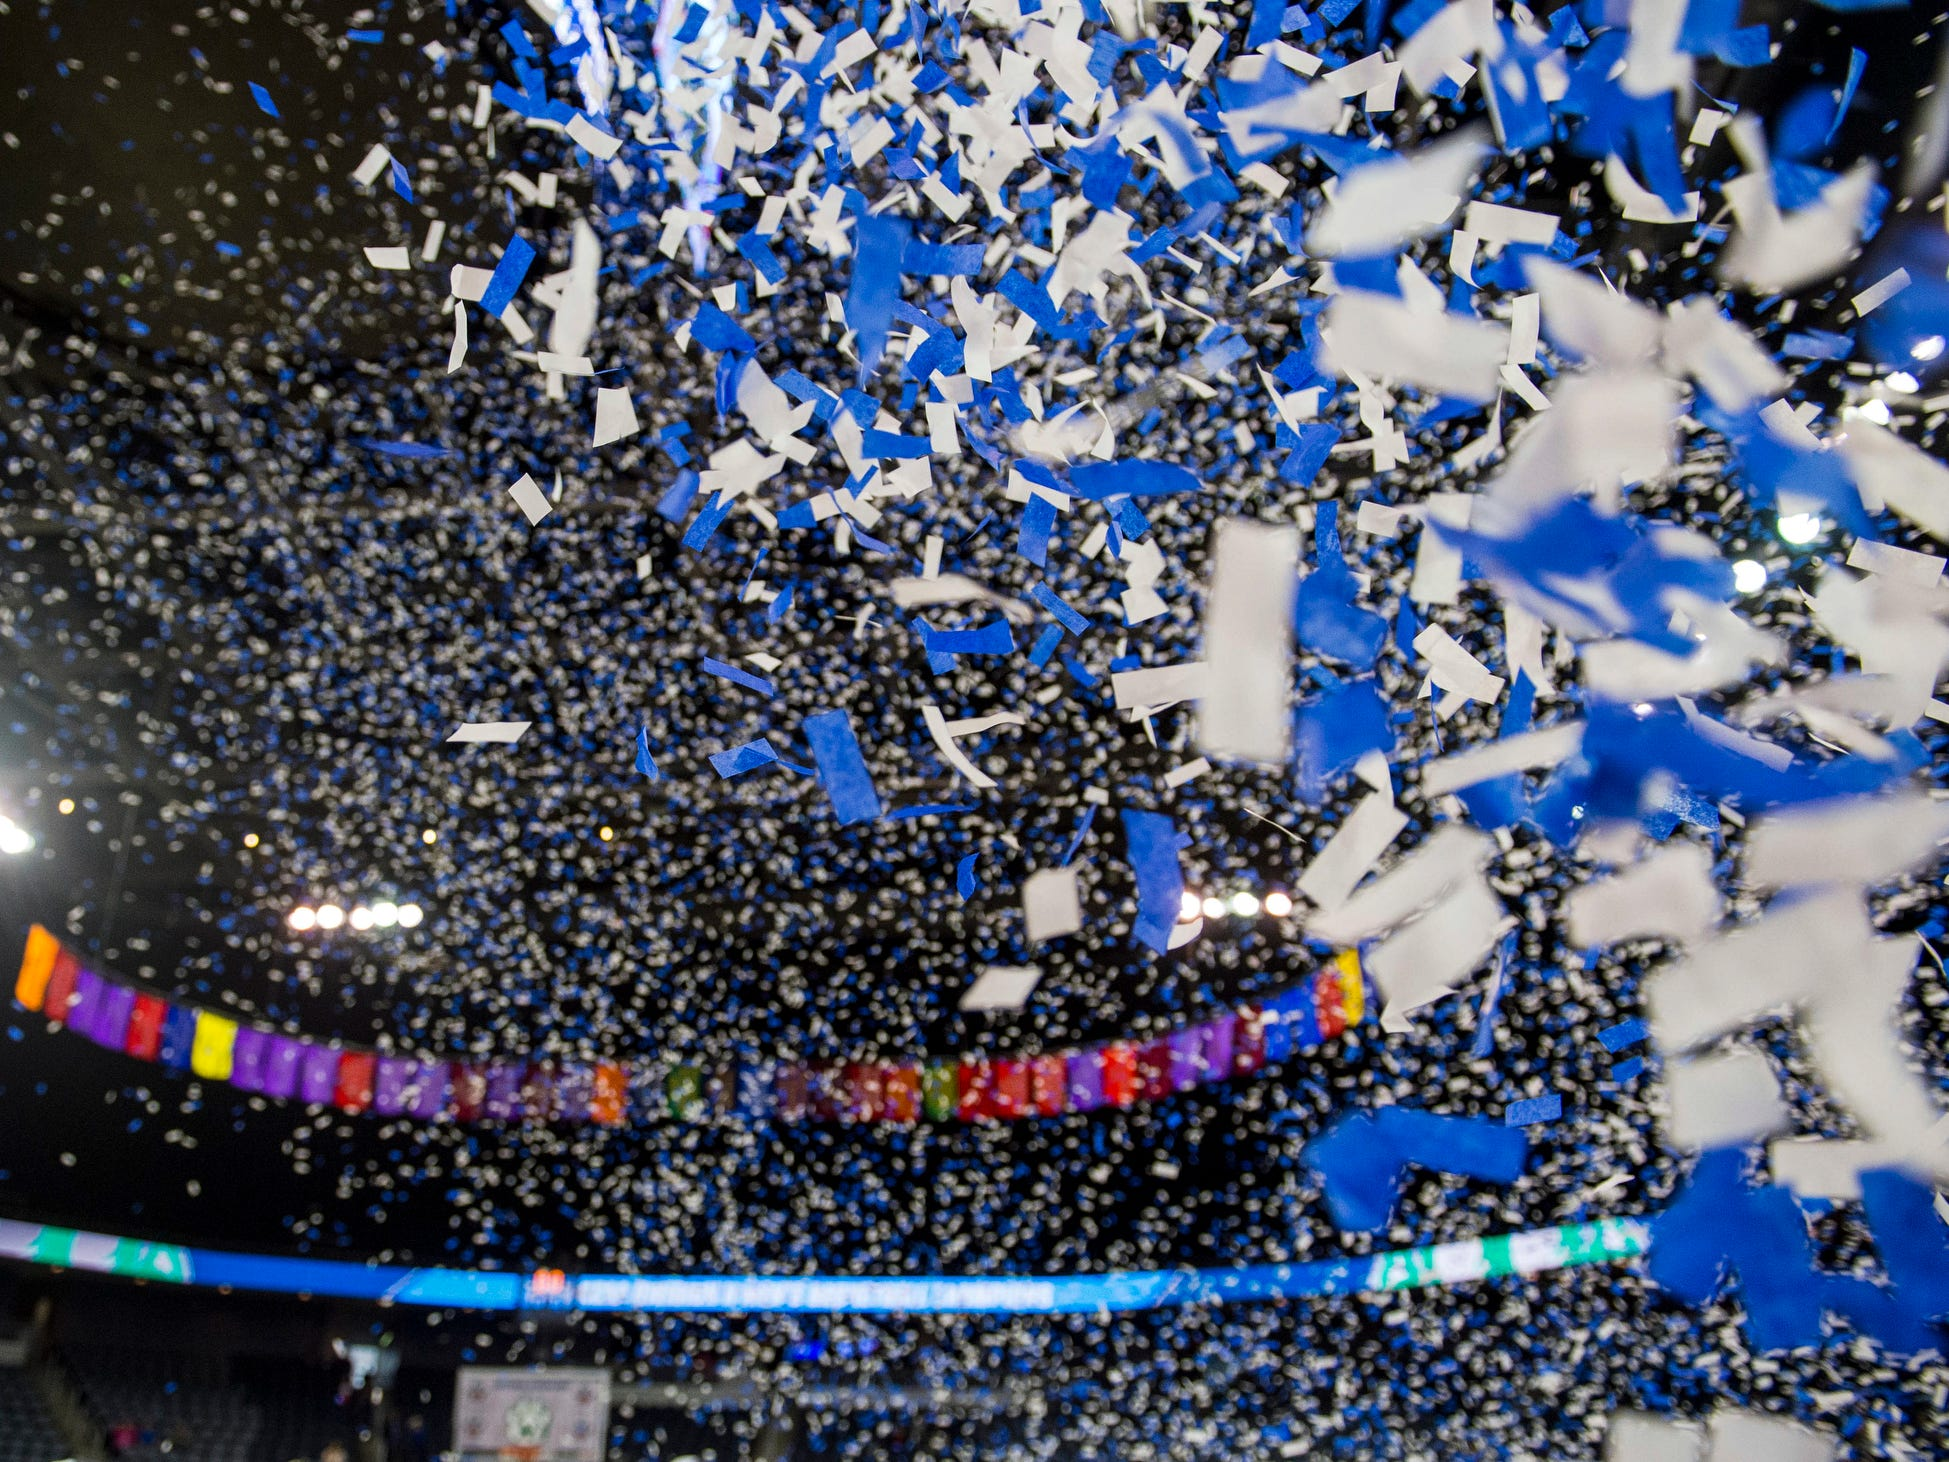 Confetti is shot from a canon as the Northwest Missouri State Bearcats celebrate their victory over the Point Loma Sea Lions in the NCAA Division II Men's Basketball National Championship game at Ford Center in Evansville, Ind., Saturday, March 30, 2019.  The Northwest Missouri State Bearcats defeated the Point Loma Sea Lions, 64-58.